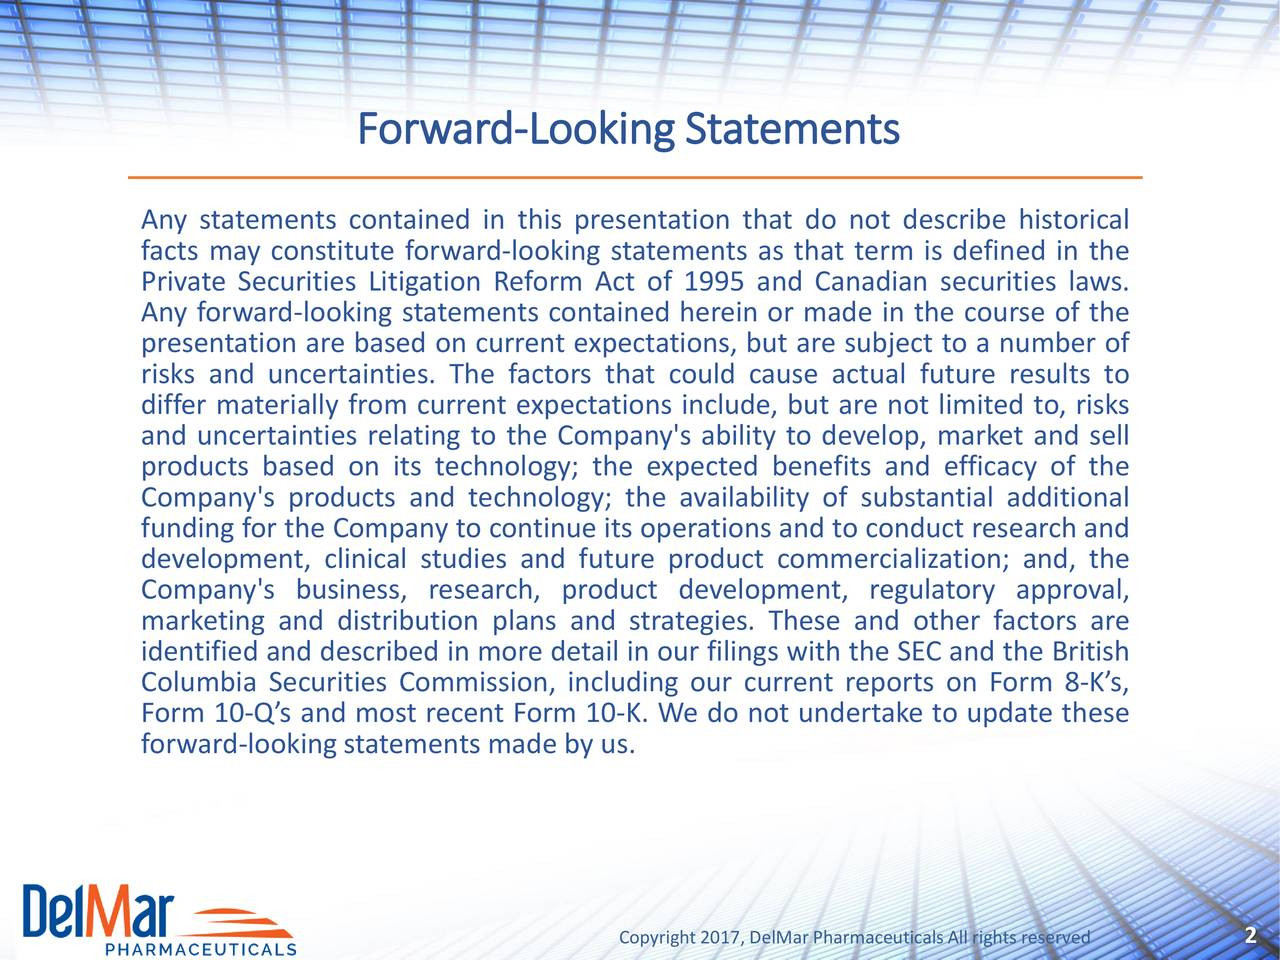 Any statements contained in this presentation that do not describe historical facts may constitute forward-looking statements as that term is defined in the Private Securities Litigation Reform Act of 1995 and Canadian securities laws. Any forward-looking statements contained herein or made in the course of the presentation are based on current expectations, but are subject to a number of risks and uncertainties. The factors that could cause actual future results to differ materially from current expectations include, but are not limited to, risks and uncertainties relating to the Company's ability to develop, market and sell products based on its technology; the expected benefits and efficacy of the Company's products and technology; the availability of substantial additional funding for the Company to continue its operations and to conduct research and development, clinical studies and future product commercialization; and, the Company's business, research, product development, regulatory approval, marketing and distribution plans and strategies. These and other factors are identified and described in more detail in our filings with the SEC and the British Columbia Securities Commission, including our current reports on Form 8-Ks, Form 10-Qs and most recent Form 10-K. We do not undertake to update these forward-lookingstatements made by us. Copyright2017, DelMar PharmaceuticalsAll rights reserved